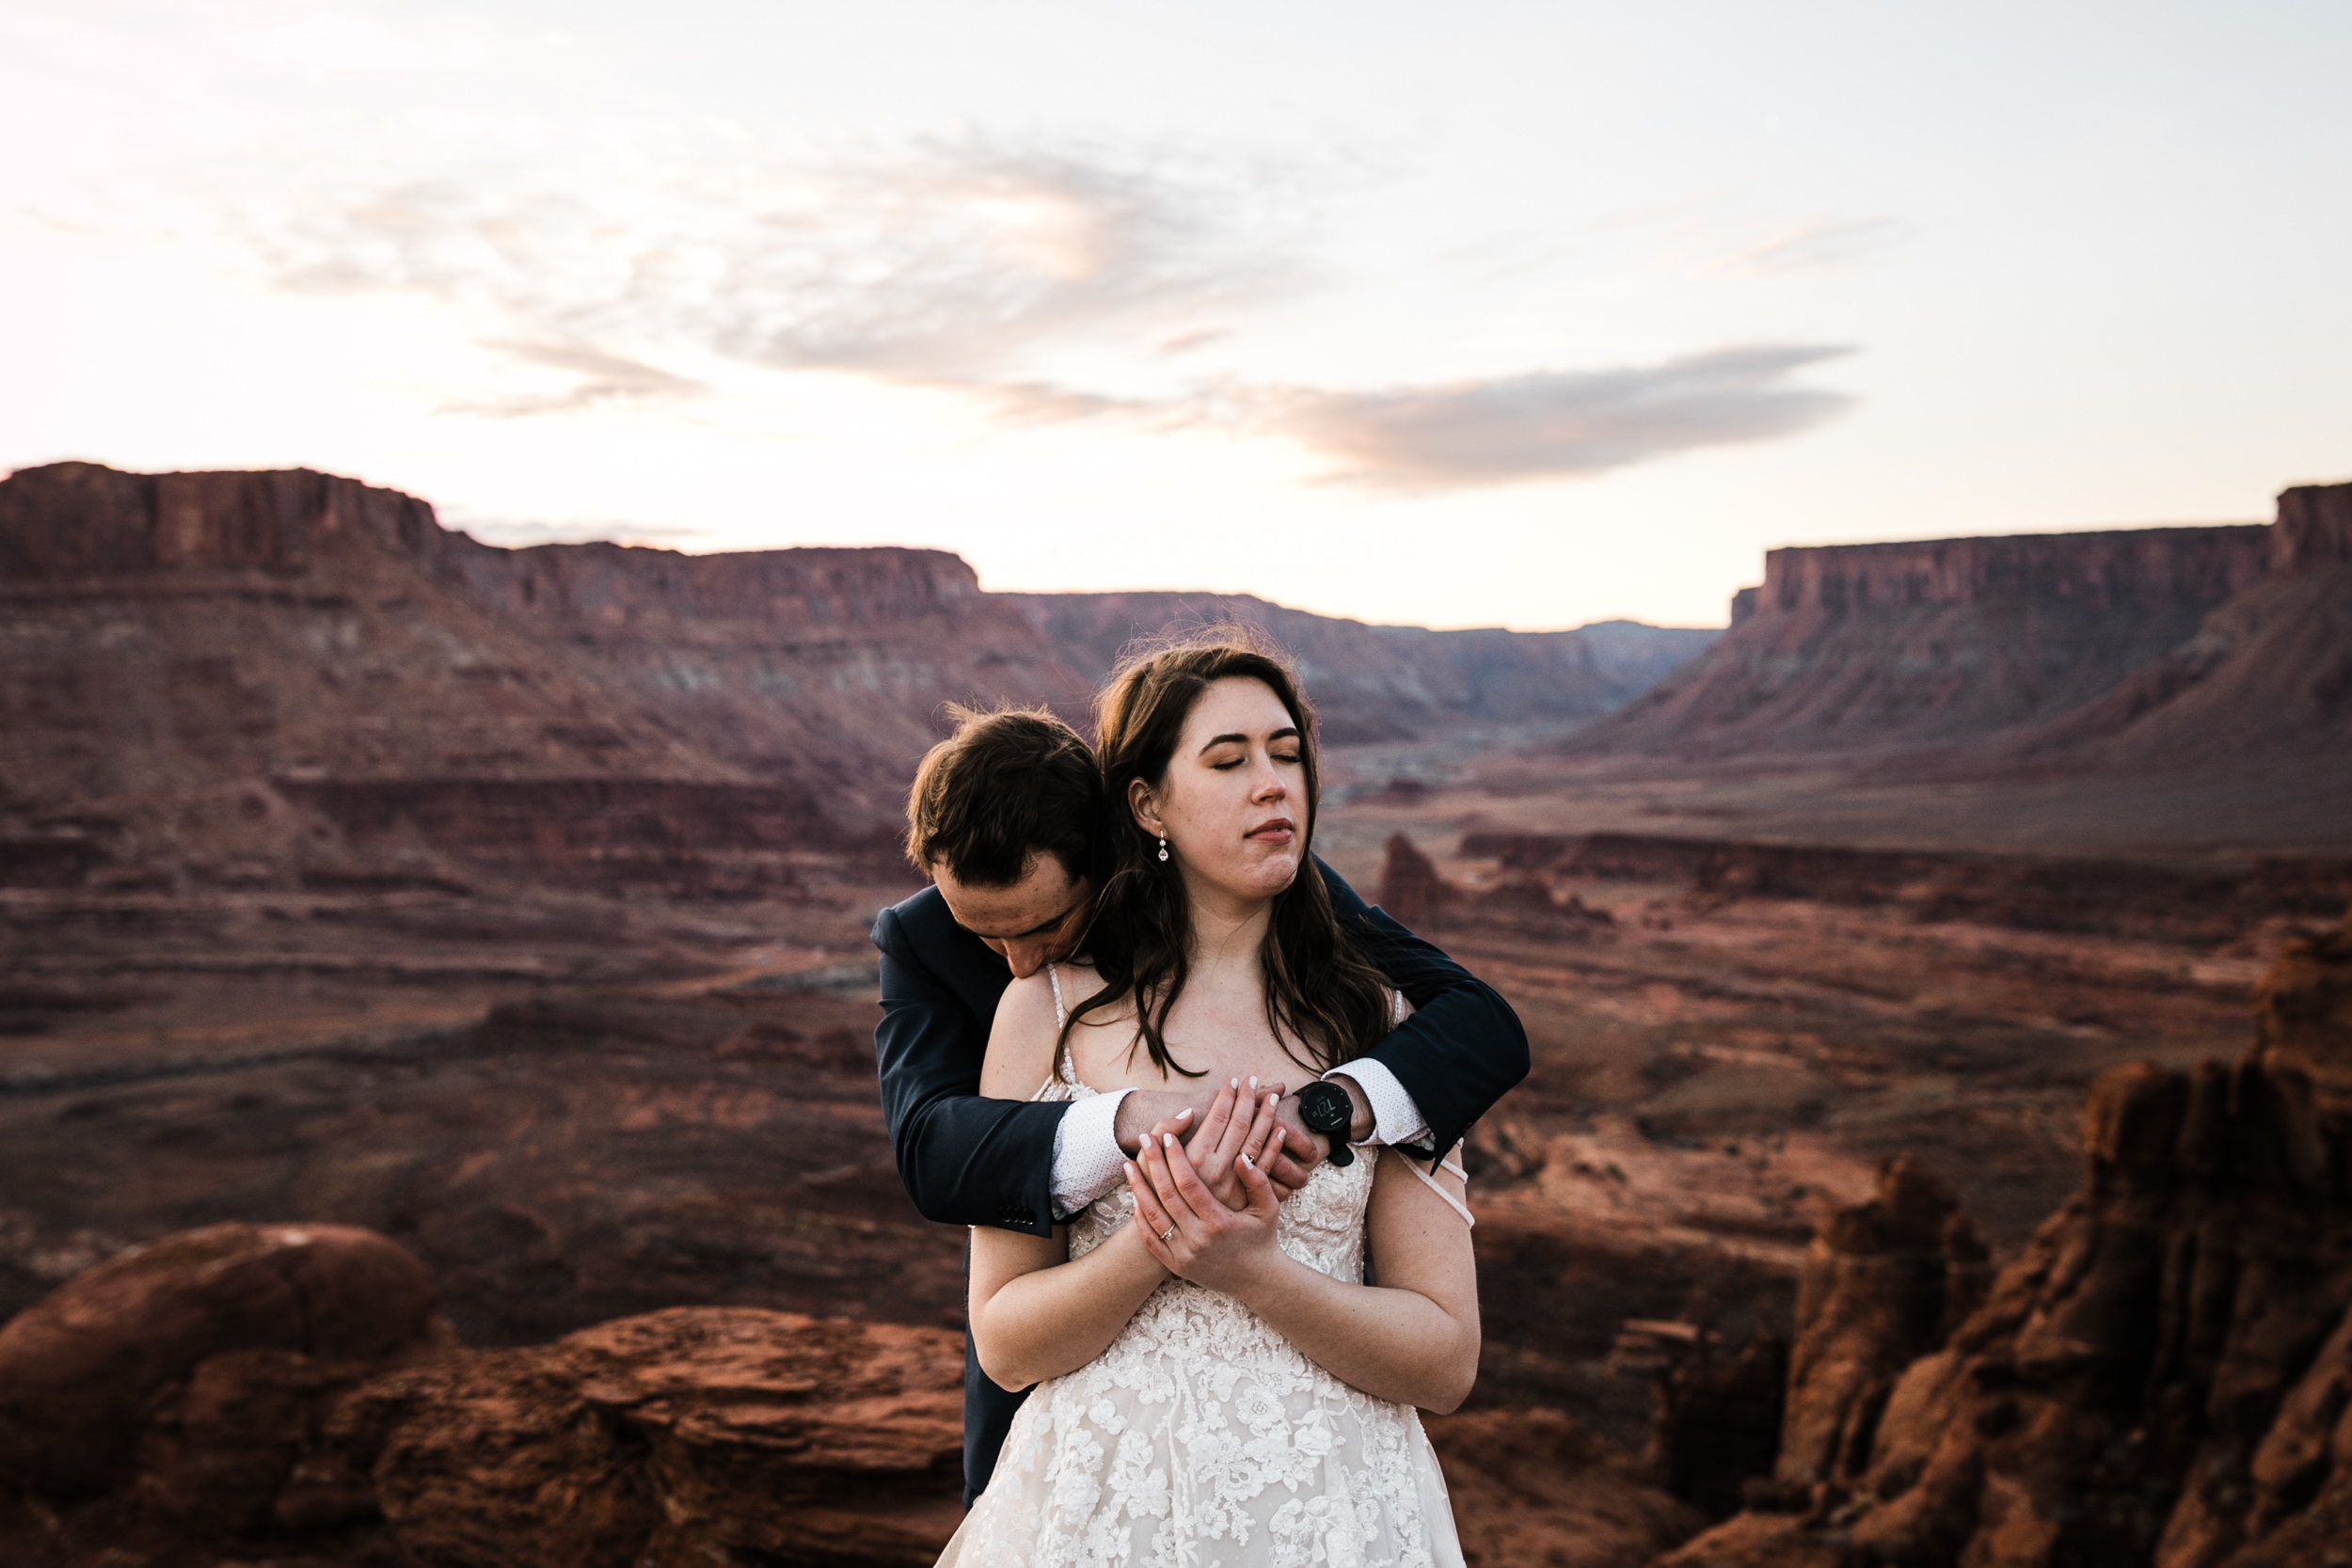 Jeff was loving on Claire so hard their whole wedding day in the desert.